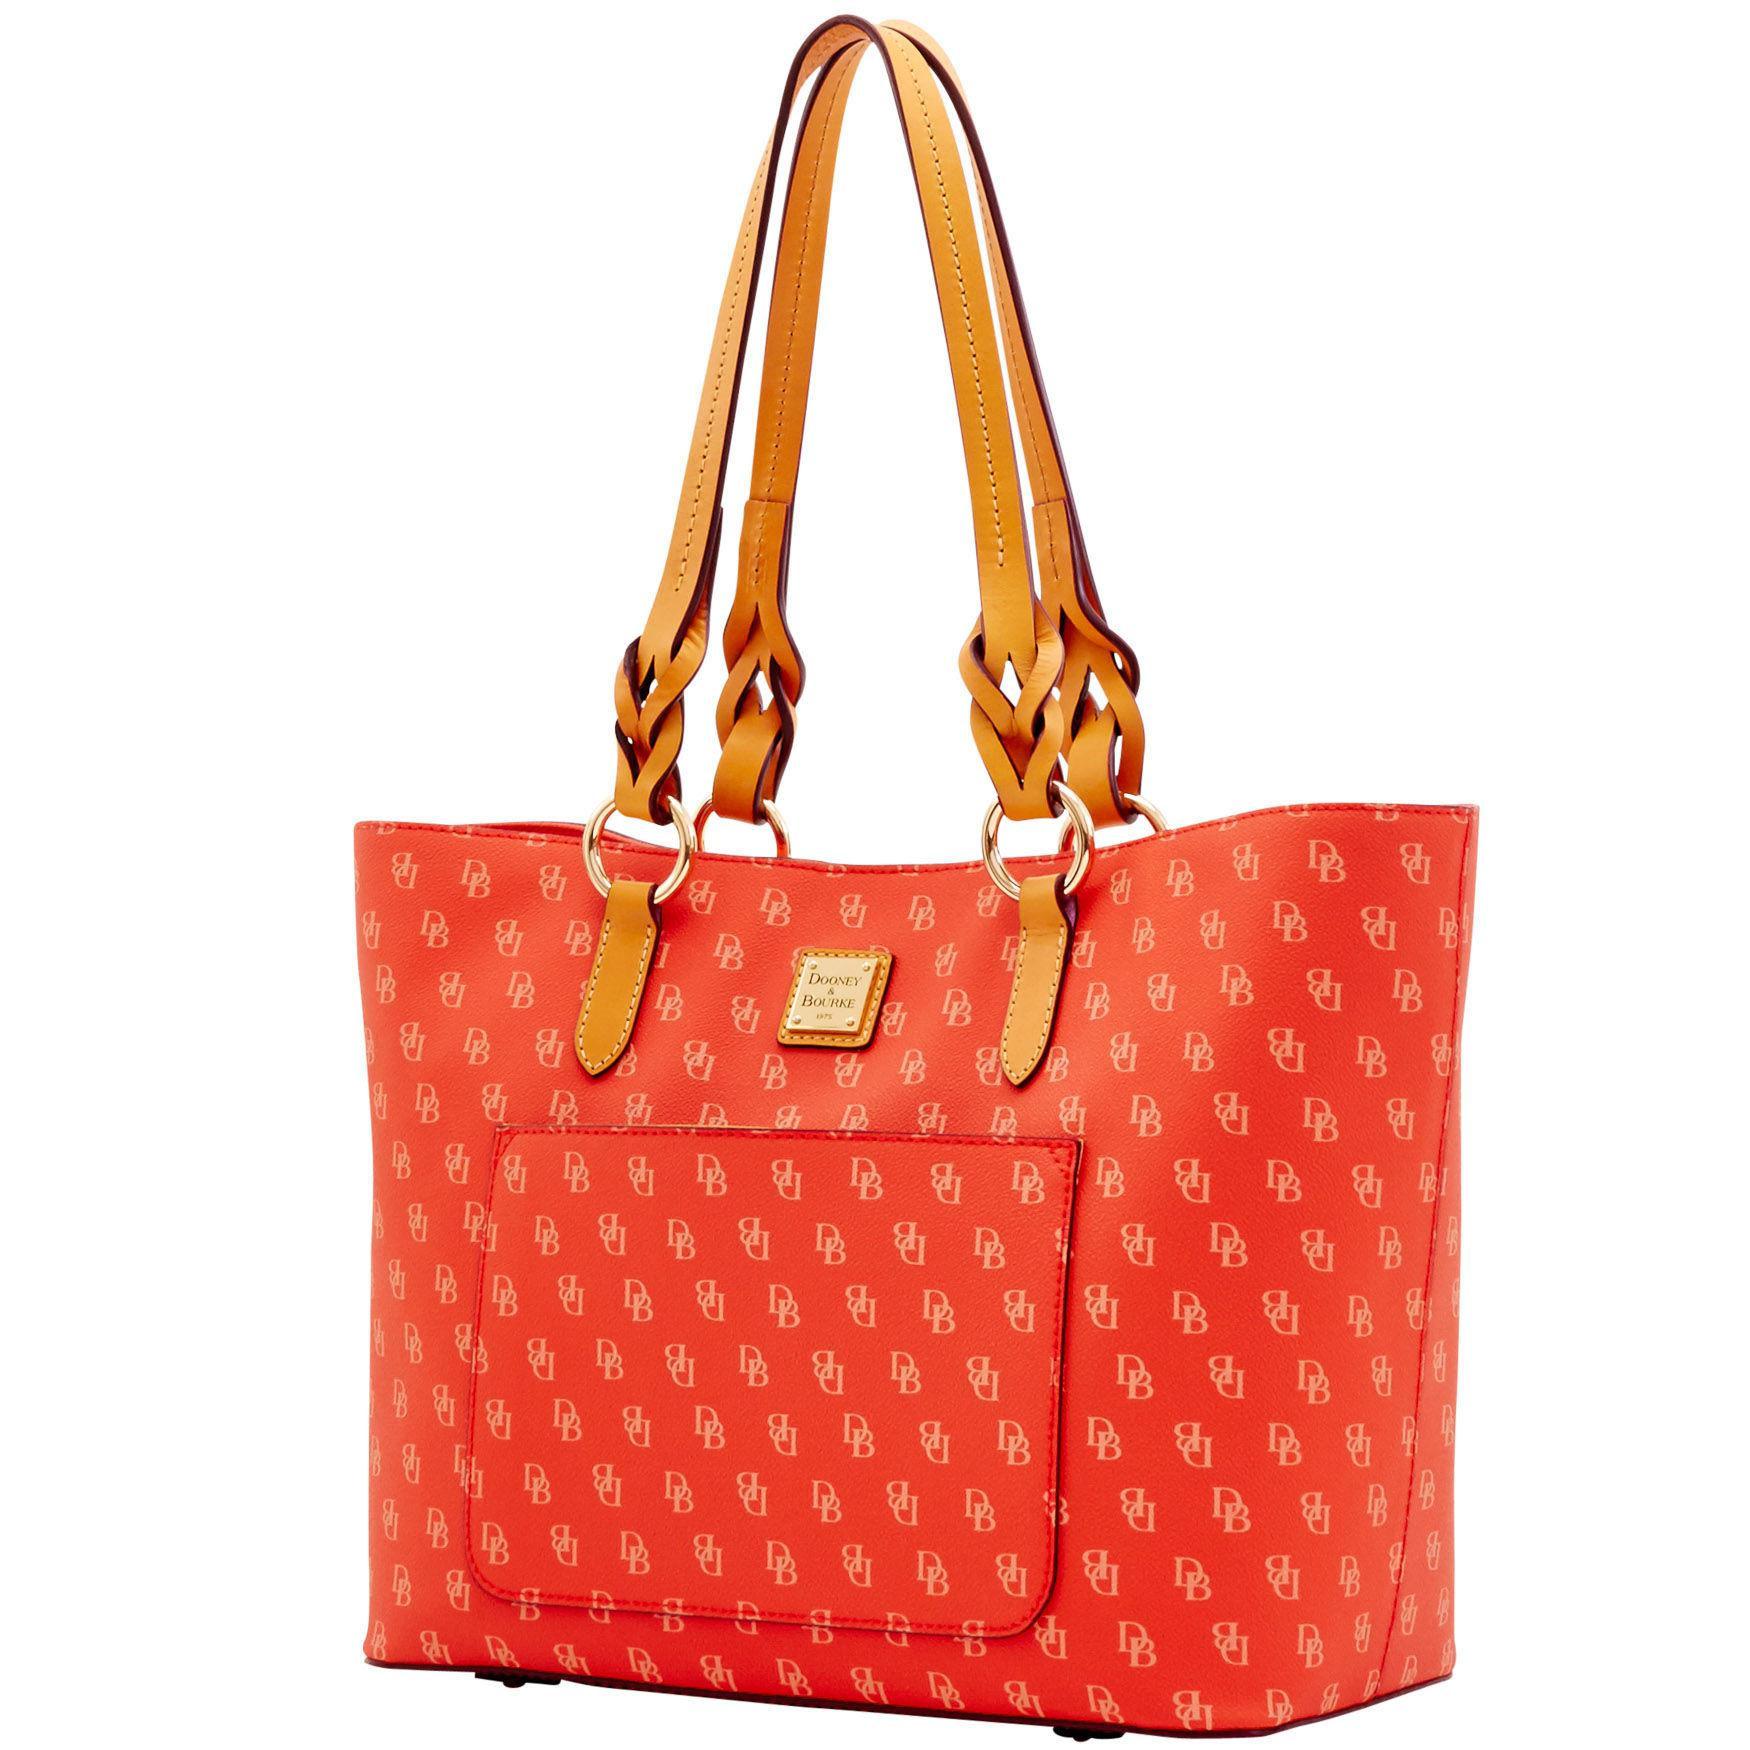 Dooney   Bourke - Red Blakely Tammy Tote - Lyst. View fullscreen 7bc973e91d1b3